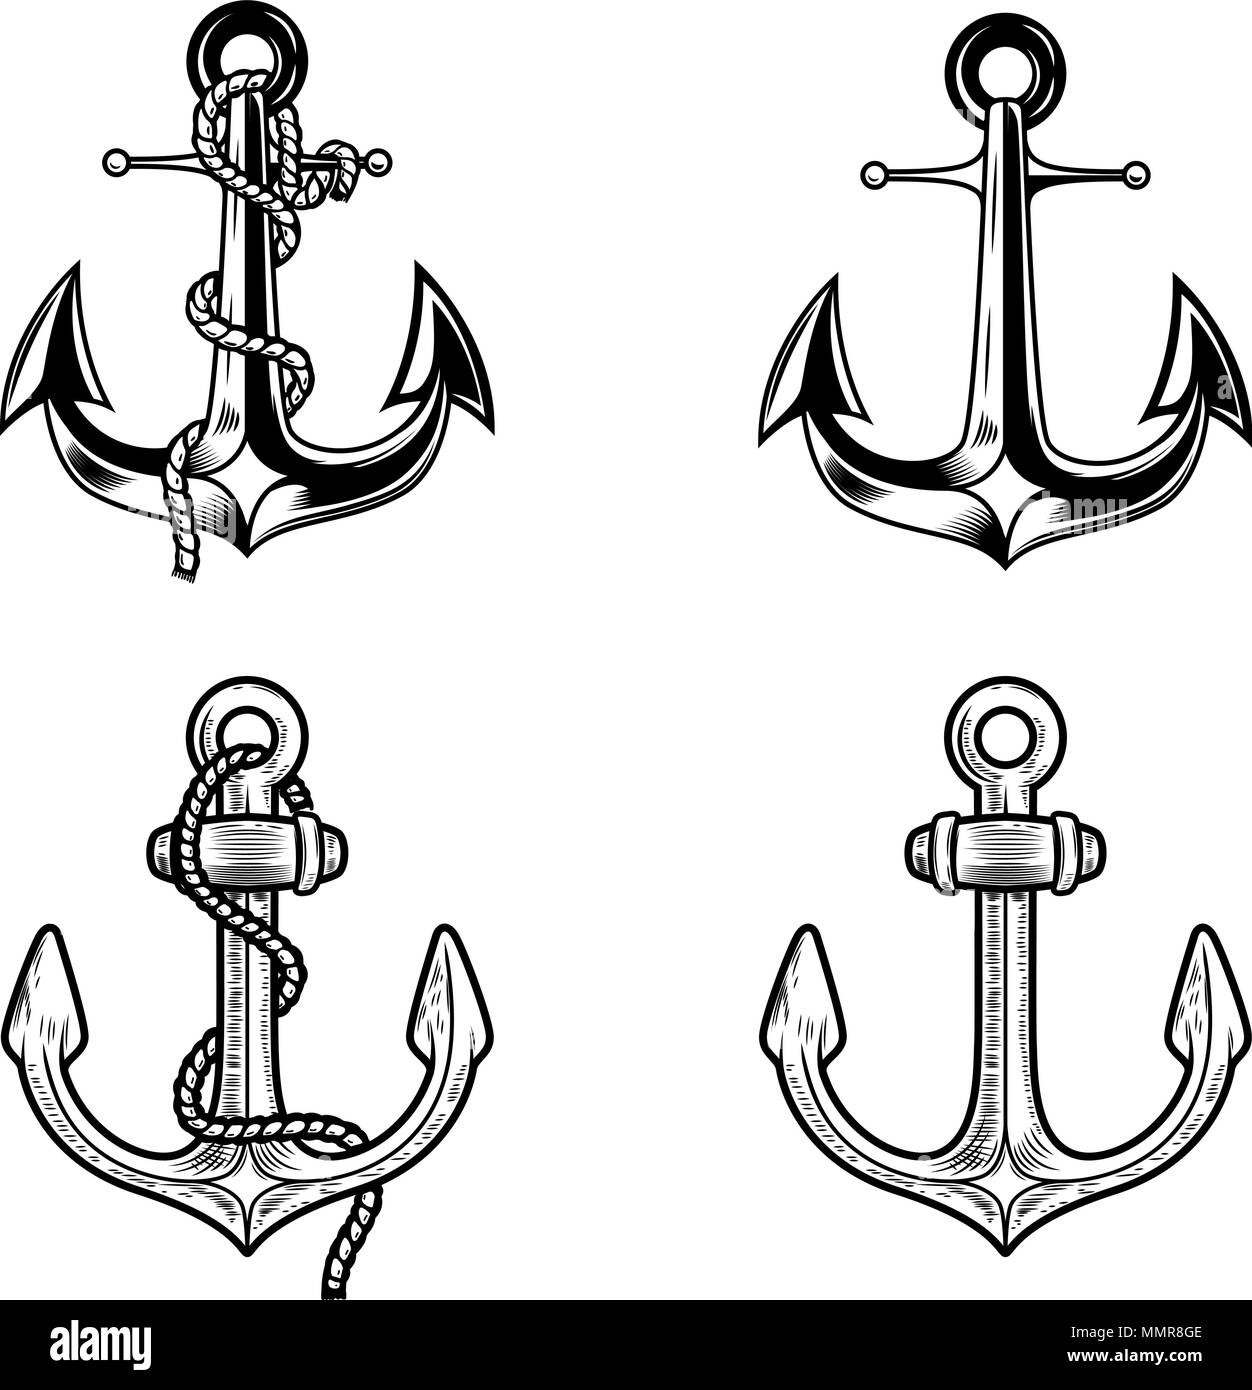 Set of anchors on white background  Design elements for logo